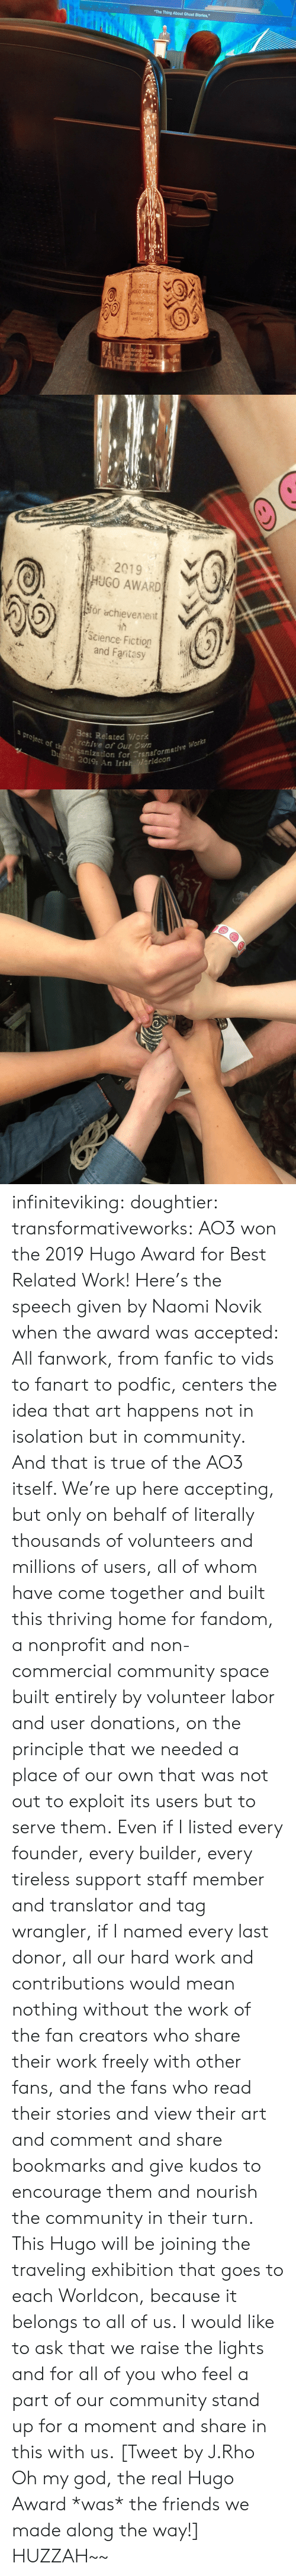 "Not Out: The Thing About Ghost Stories,""  2019  HUGO AWARD  Sor achieventt  Soence Fiction  and Fanta  BeRelate Wark  Aedre of Cur Own  arlketion for 1ransformacive Wcks  OA Kelsh Workde   a  2019  HUGO AWARD  or achievennent  (Science Fiction  and Faritasy  a project of the Organization for Transformative Works  Dubiln 2019: An Irish eridcon  Best Related Work  Archive of Our Own infiniteviking: doughtier:  transformativeworks:  AO3 won the 2019 Hugo Award for Best Related Work! Here's the speech given by Naomi Novik when the award was accepted:  All fanwork, from fanfic to vids to fanart to podfic, centers the idea that art happens not in isolation but in community. And that is true of the AO3 itself. We're up here accepting, but only on behalf of literally thousands of volunteers and millions of users, all of whom have come together and built this thriving home for fandom, a nonprofit and non-commercial community space built entirely by volunteer labor and user donations, on the principle that we needed a place of our own that was not out to exploit its users but to serve them. Even if I listed every founder, every builder, every tireless support staff member and translator and tag wrangler, if I named every last donor, all our hard work and contributions would mean nothing without the work of the fan creators who share their work freely with other fans, and the fans who read their stories and view their art and comment and share bookmarks and give kudos to encourage them and nourish the community in their turn. This Hugo will be joining the traveling exhibition that goes to each Worldcon, because it belongs to all of us. I would like to ask that we raise the lights and for all of you who feel a part of our community stand up for a moment and share in this with us.   [Tweet by J.Rho Oh my god, the real Hugo Award *was* the friends we made along the way!]  HUZZAH~~"